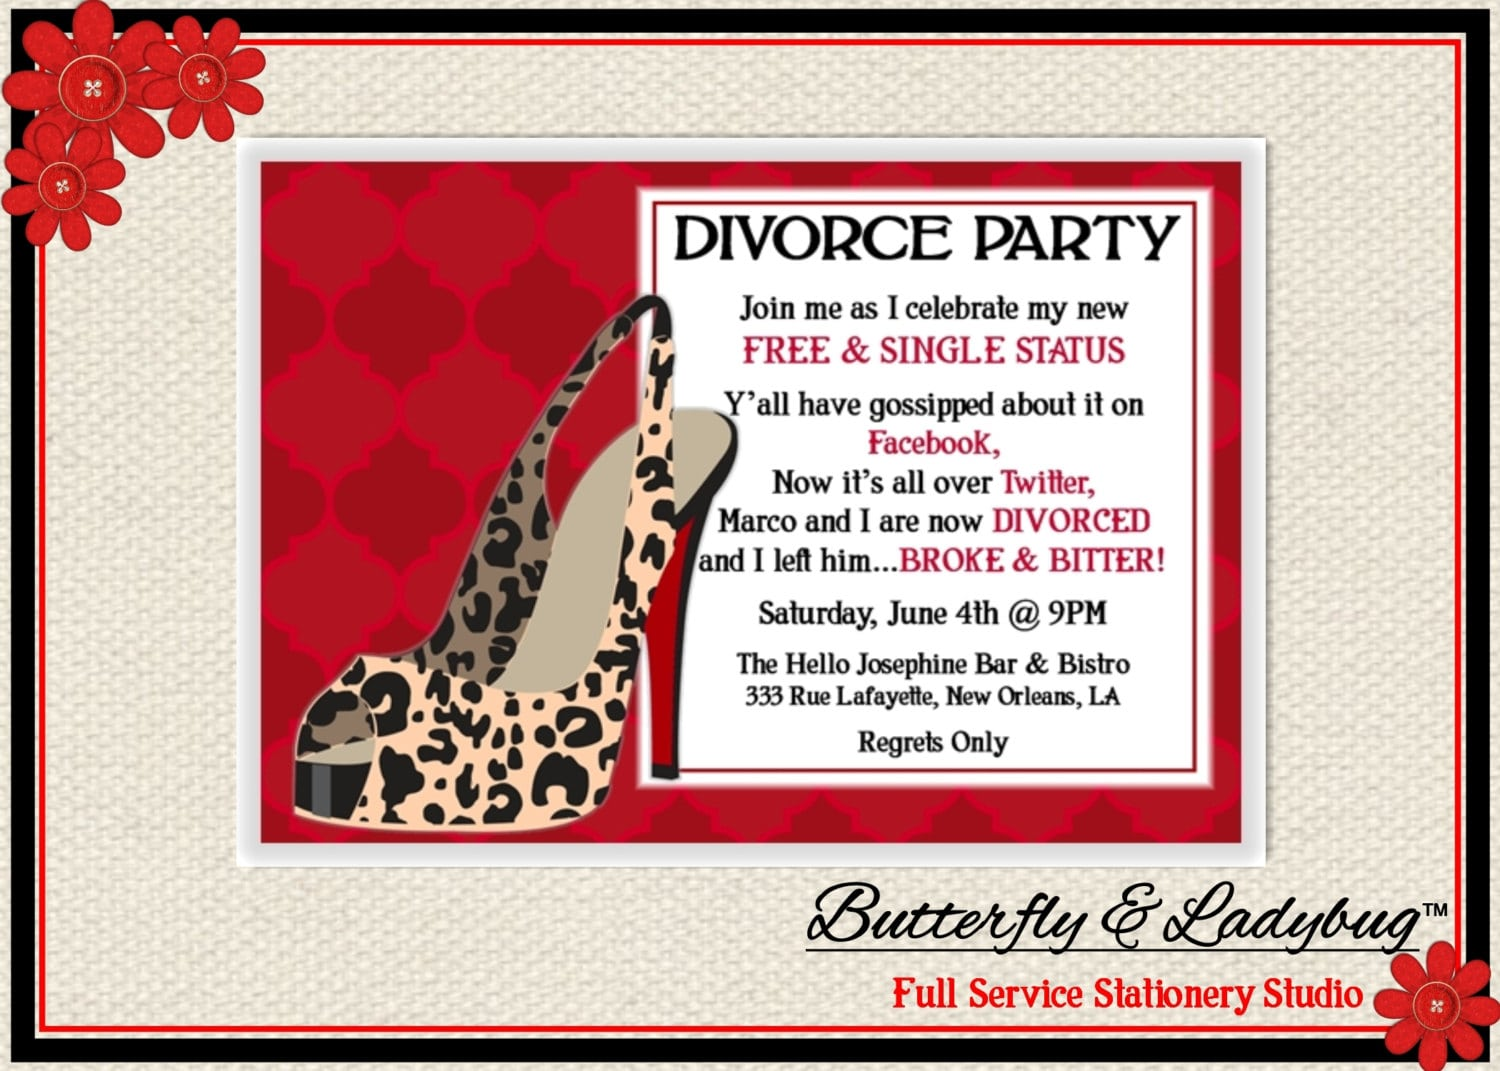 Divorce Party Theme Free Printable Invitation Design